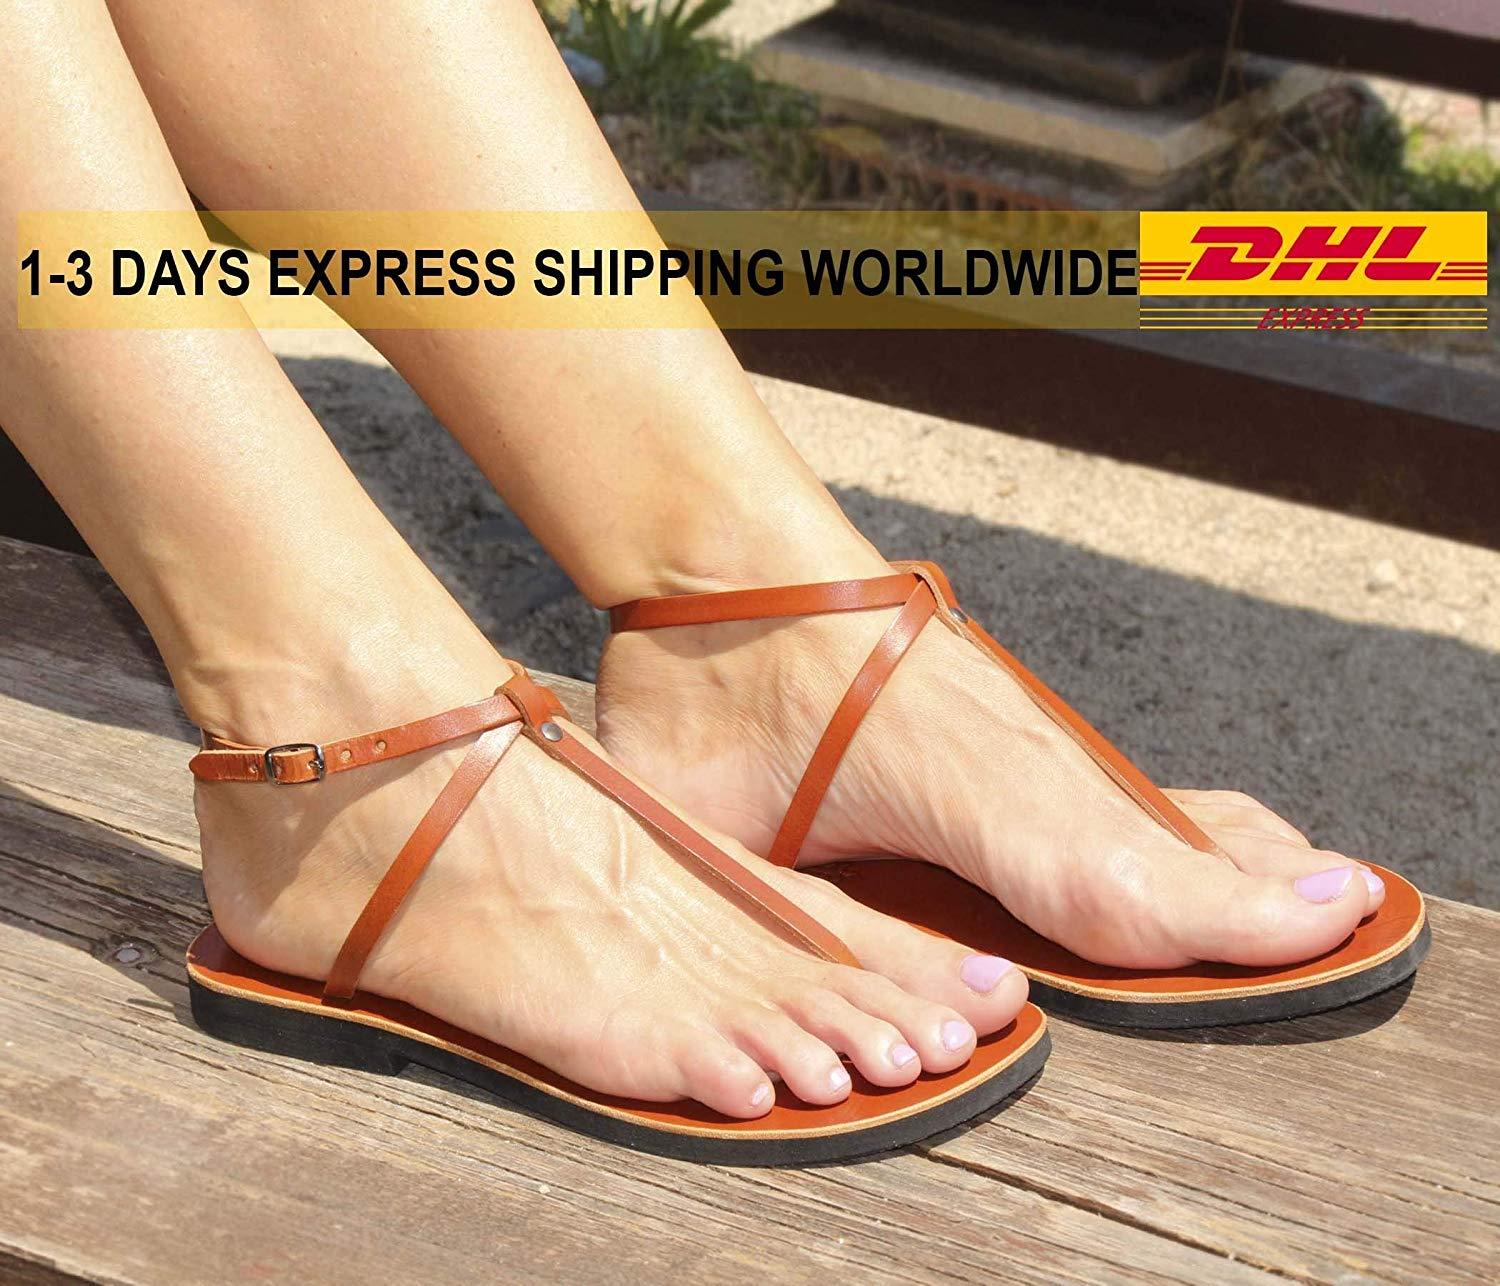 Expedited Shipping Leather Thong Sandals, Barefoot Ankle Strap Flats, Unisex Delicate Sandals, Slingback Sandals - SIN